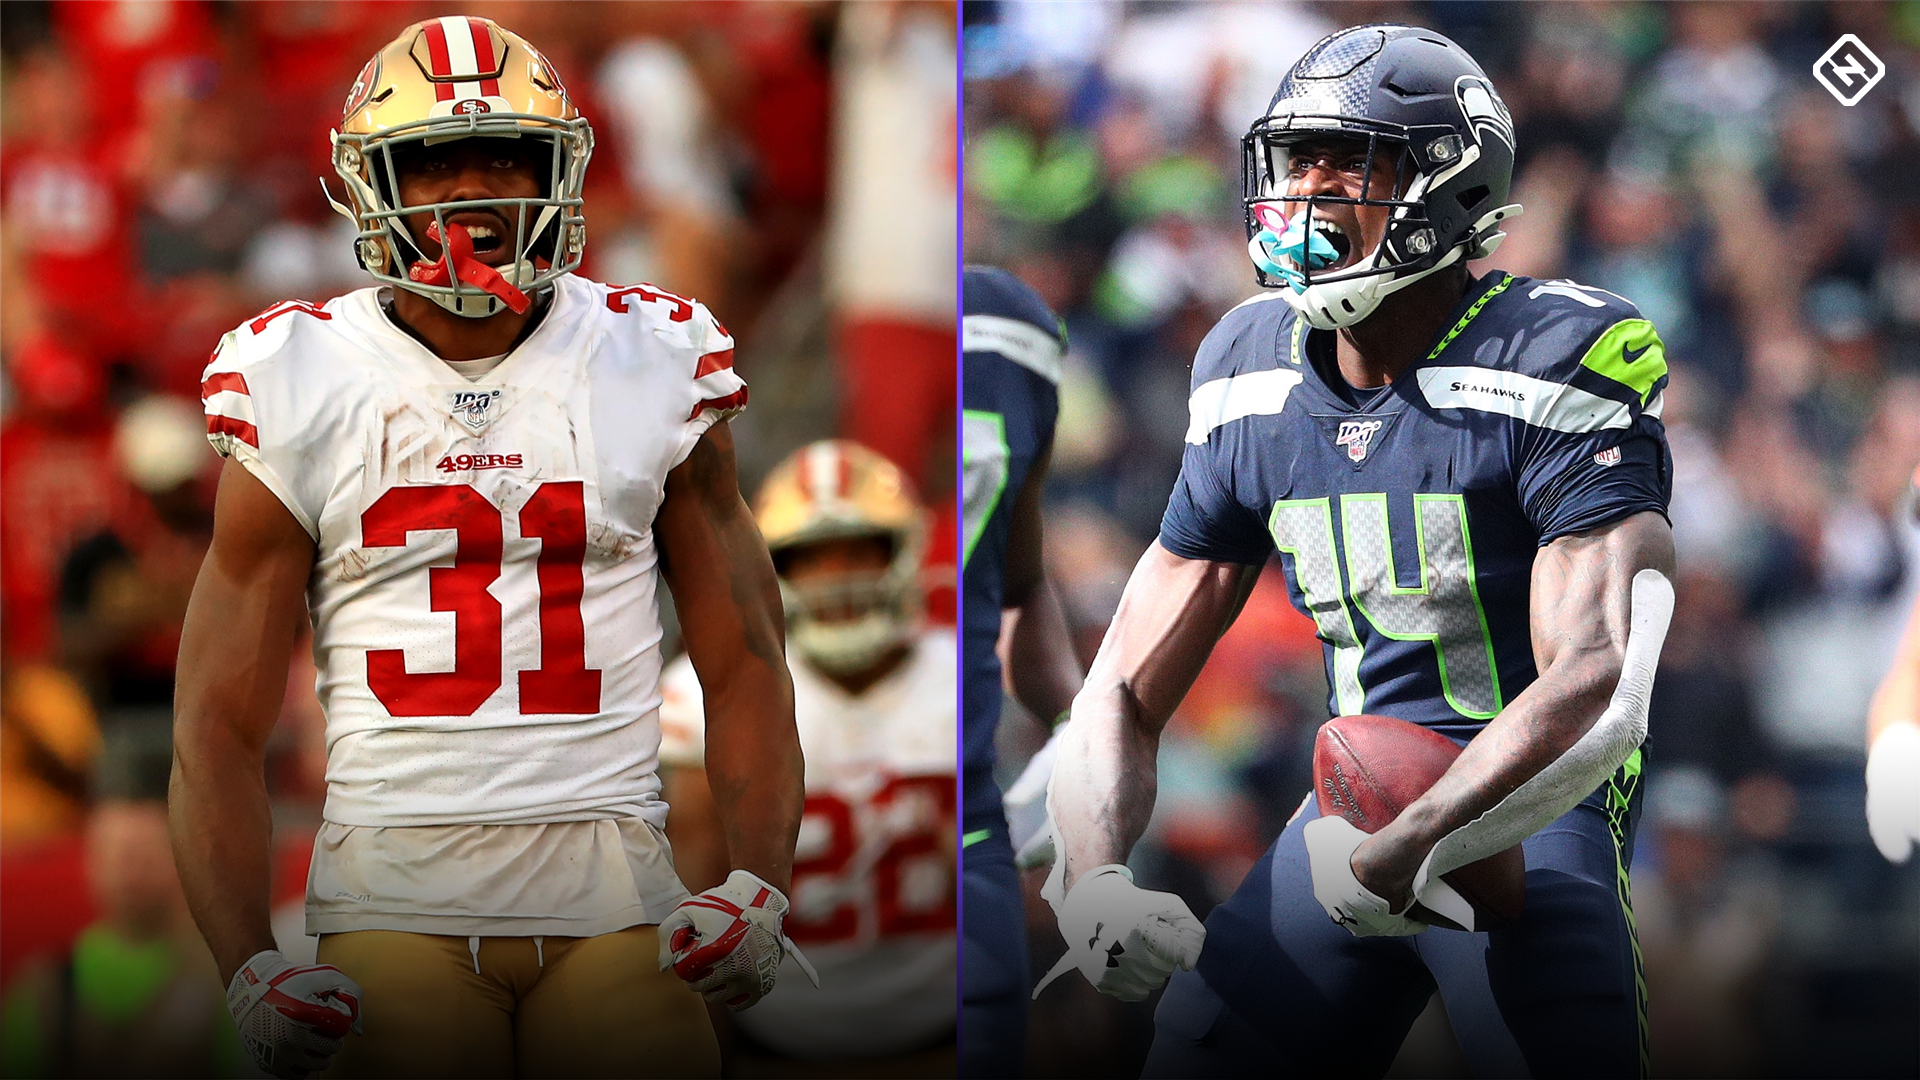 Fantasy Football Waiver Wire Watch List for Week 3: Streaming targets, free agent sleepers